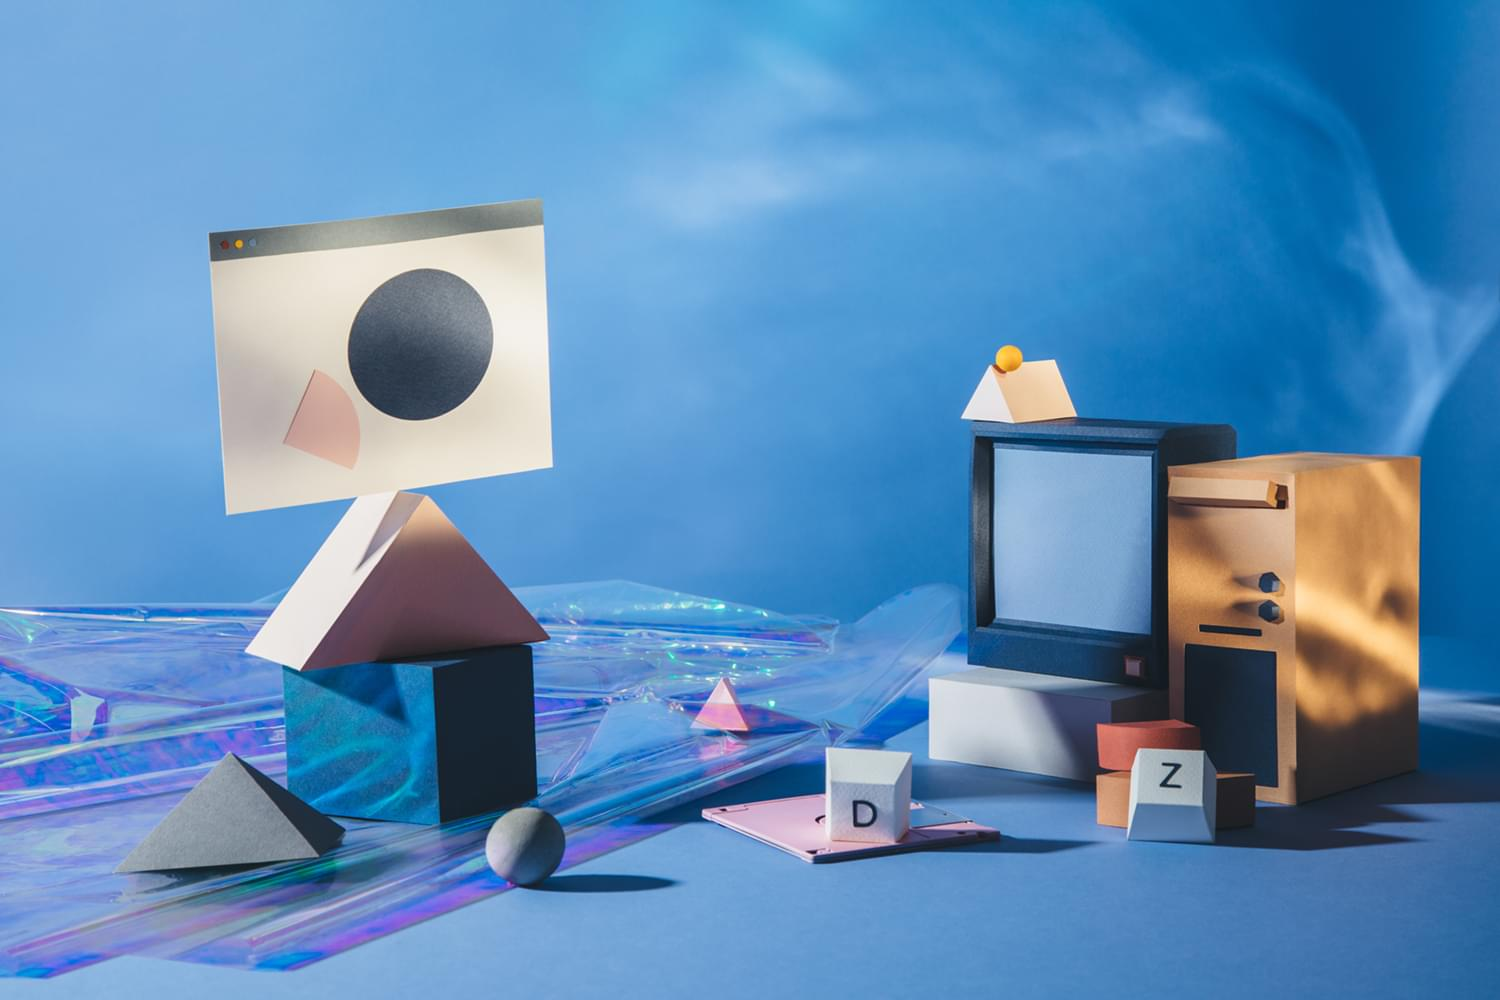 An assortment of objects representing cloud companies, such as a computer tower and television with smaller objects surrounding